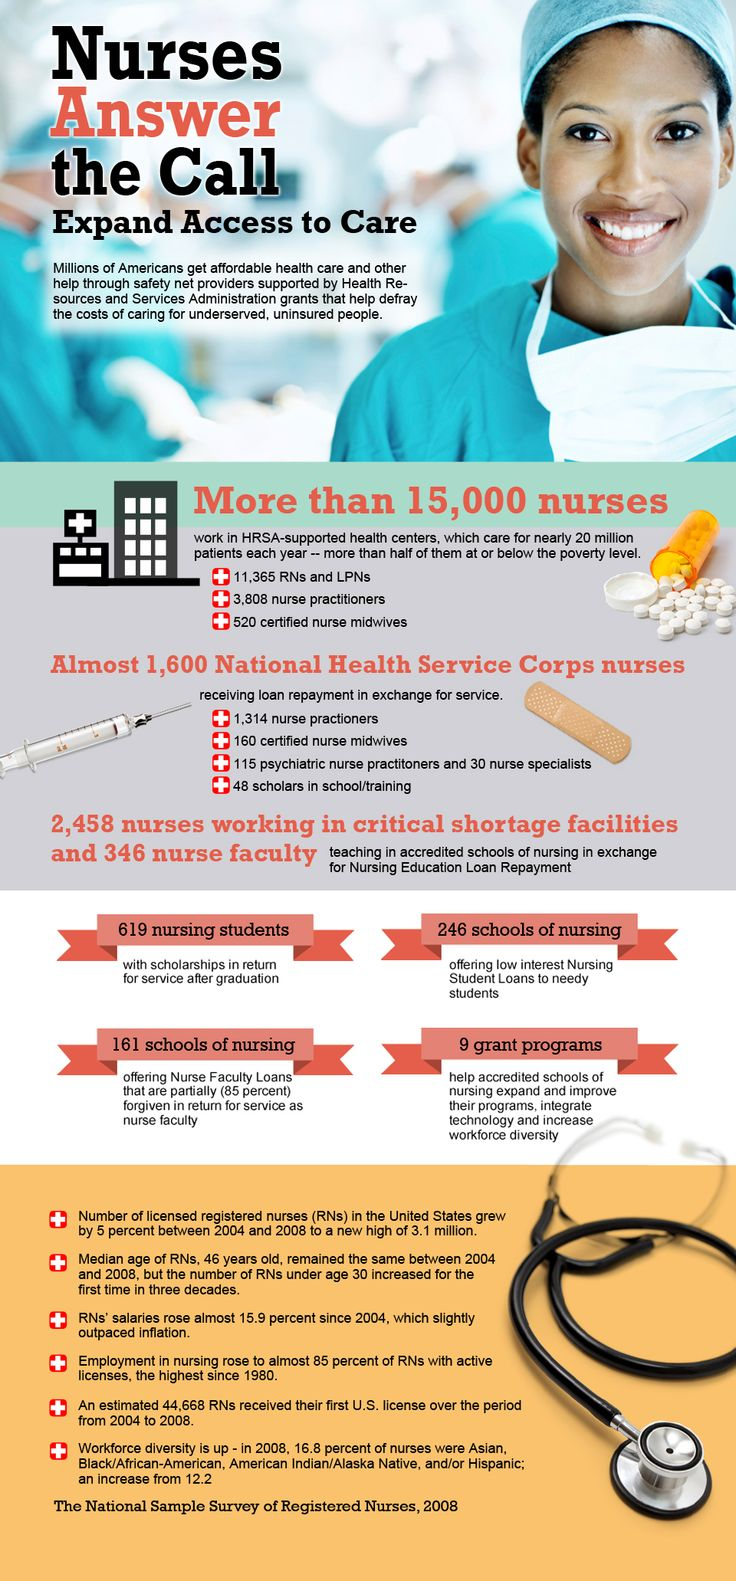 nur 531 nursing shortage and quality Nursing shortage is not only a shortage of individuals with nursing qualification but also a shortage of qualified individuals who unwilling to work under current conditions the american health care system is on a time bomb waiting to explode.